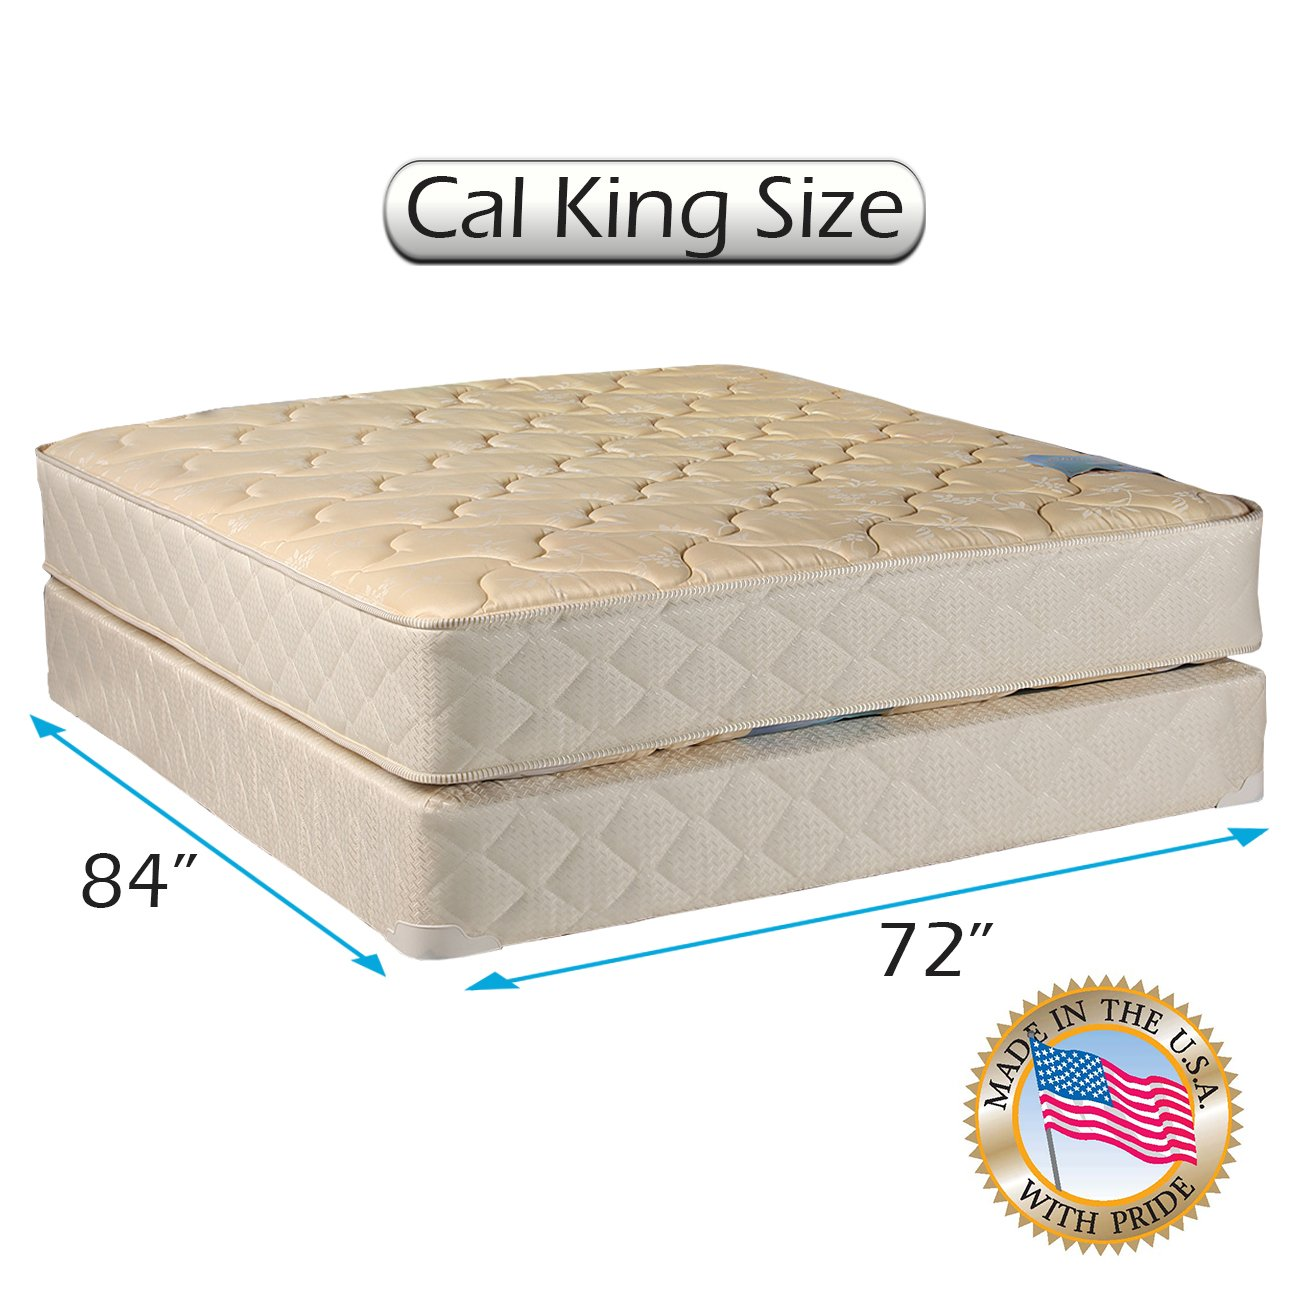 Chiro Premier Orthopedic (Beige) California King - 72''x84''x9'' Mattress and Box Spring Set - Fully Assembled, Good for your back, Superior Quality, Long Lasting and 2 Sided - By Dream Solutions USA by Dream Solutions USA